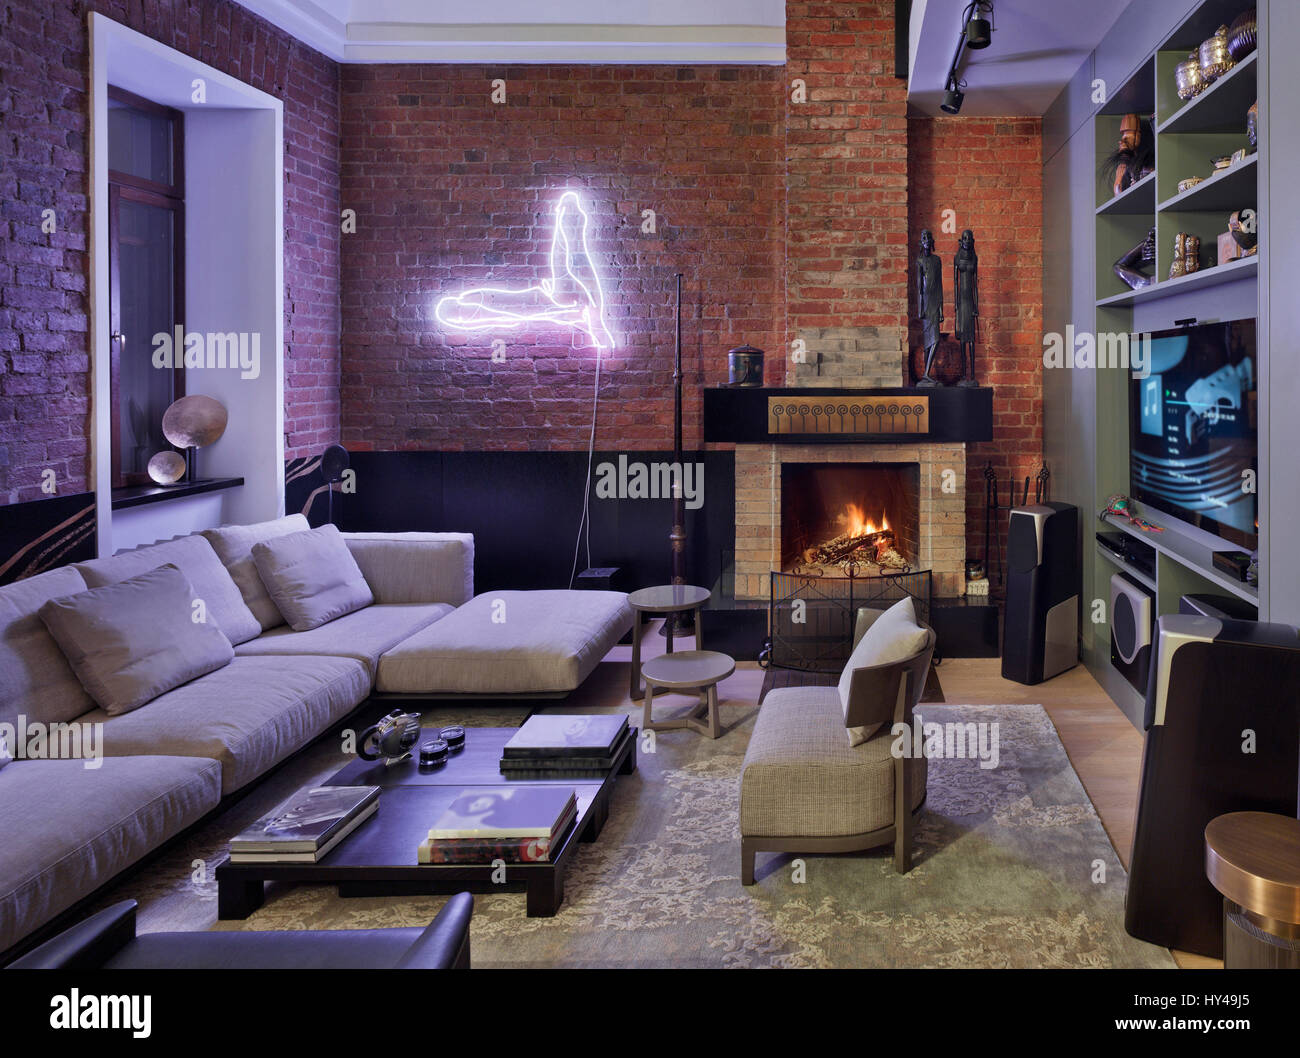 Interior Design In A Luxury Loft Apartment In Moscow Living Room Stock Photo Alamy